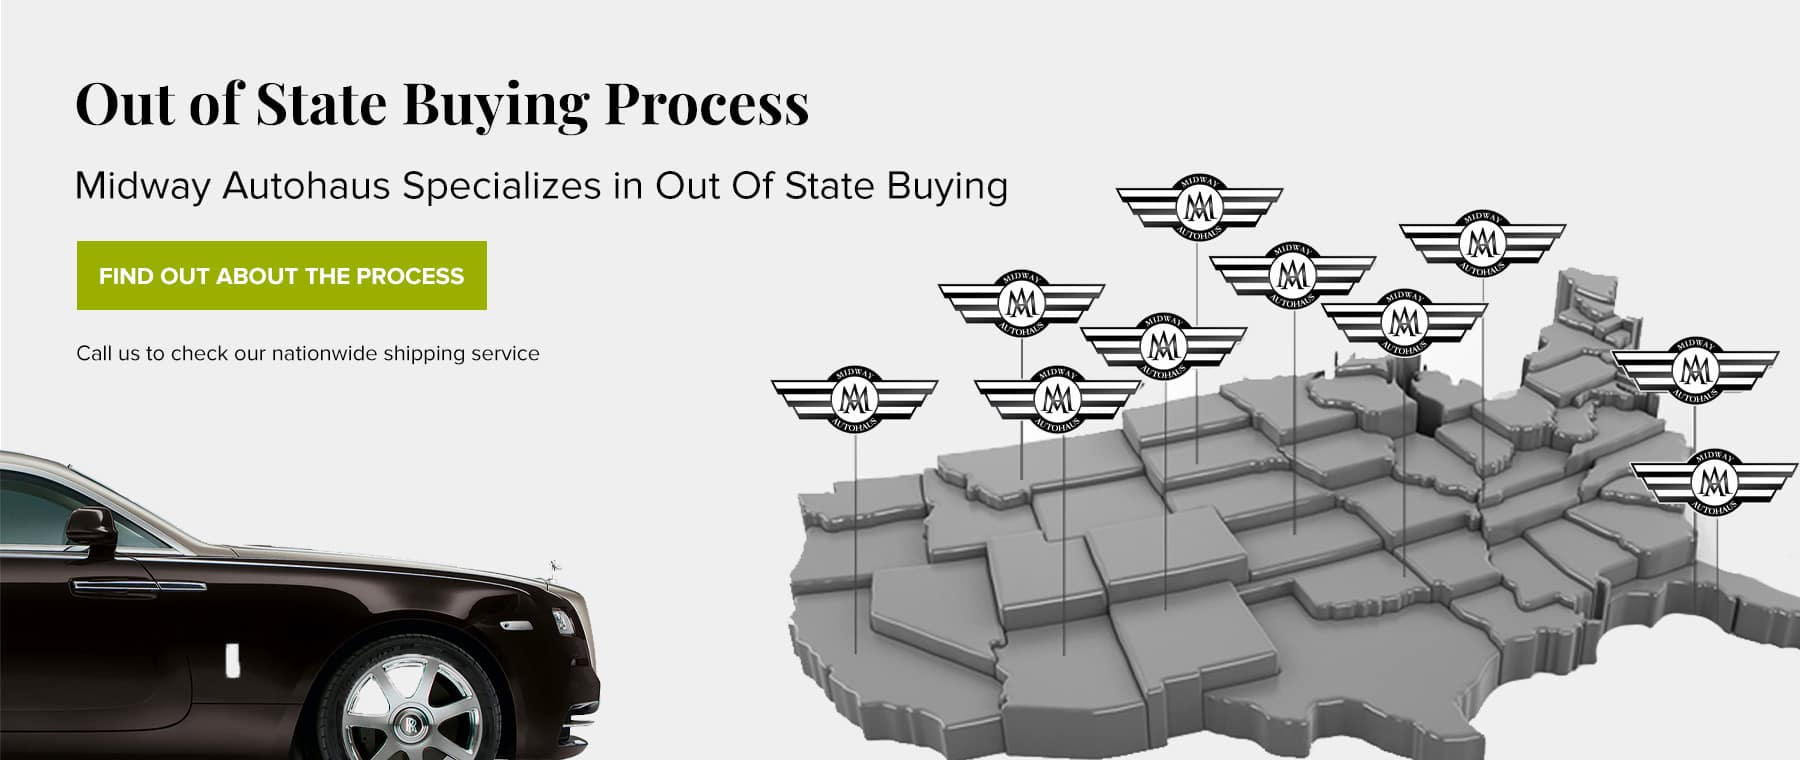 Out of State Buying Process